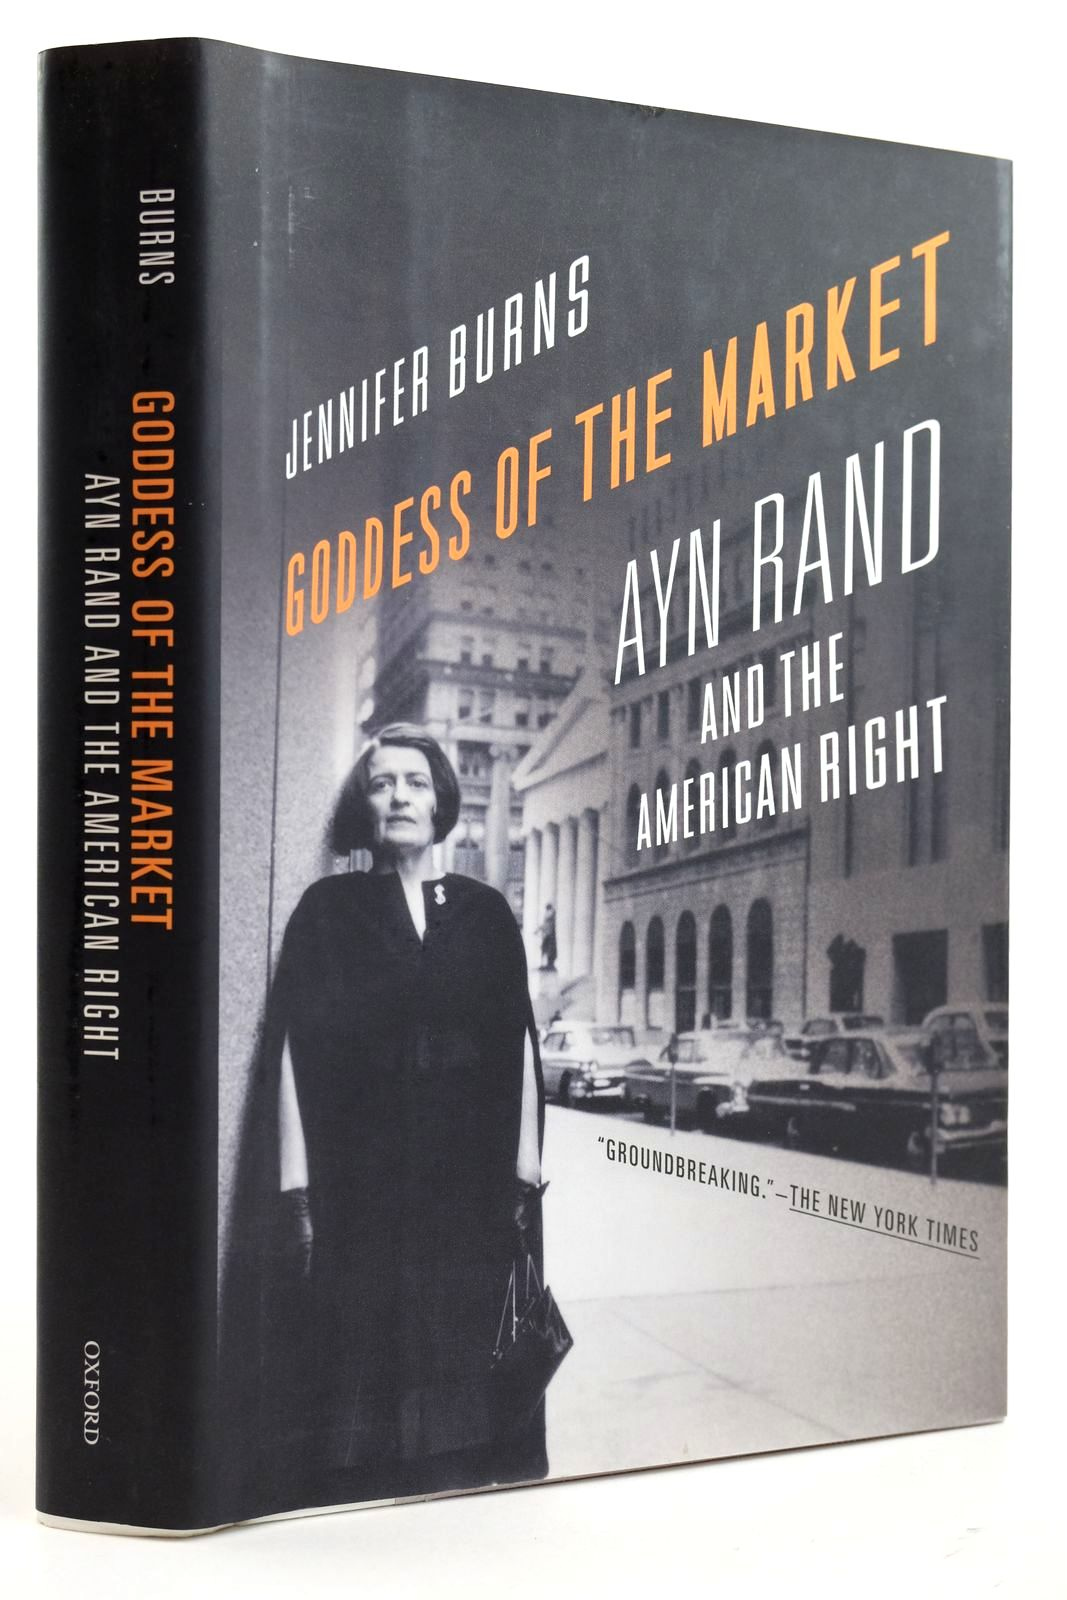 Photo of GODDESS OF THE MARKET AYN RAND AND THE AMERICAN RIGHT- Stock Number: 2132513